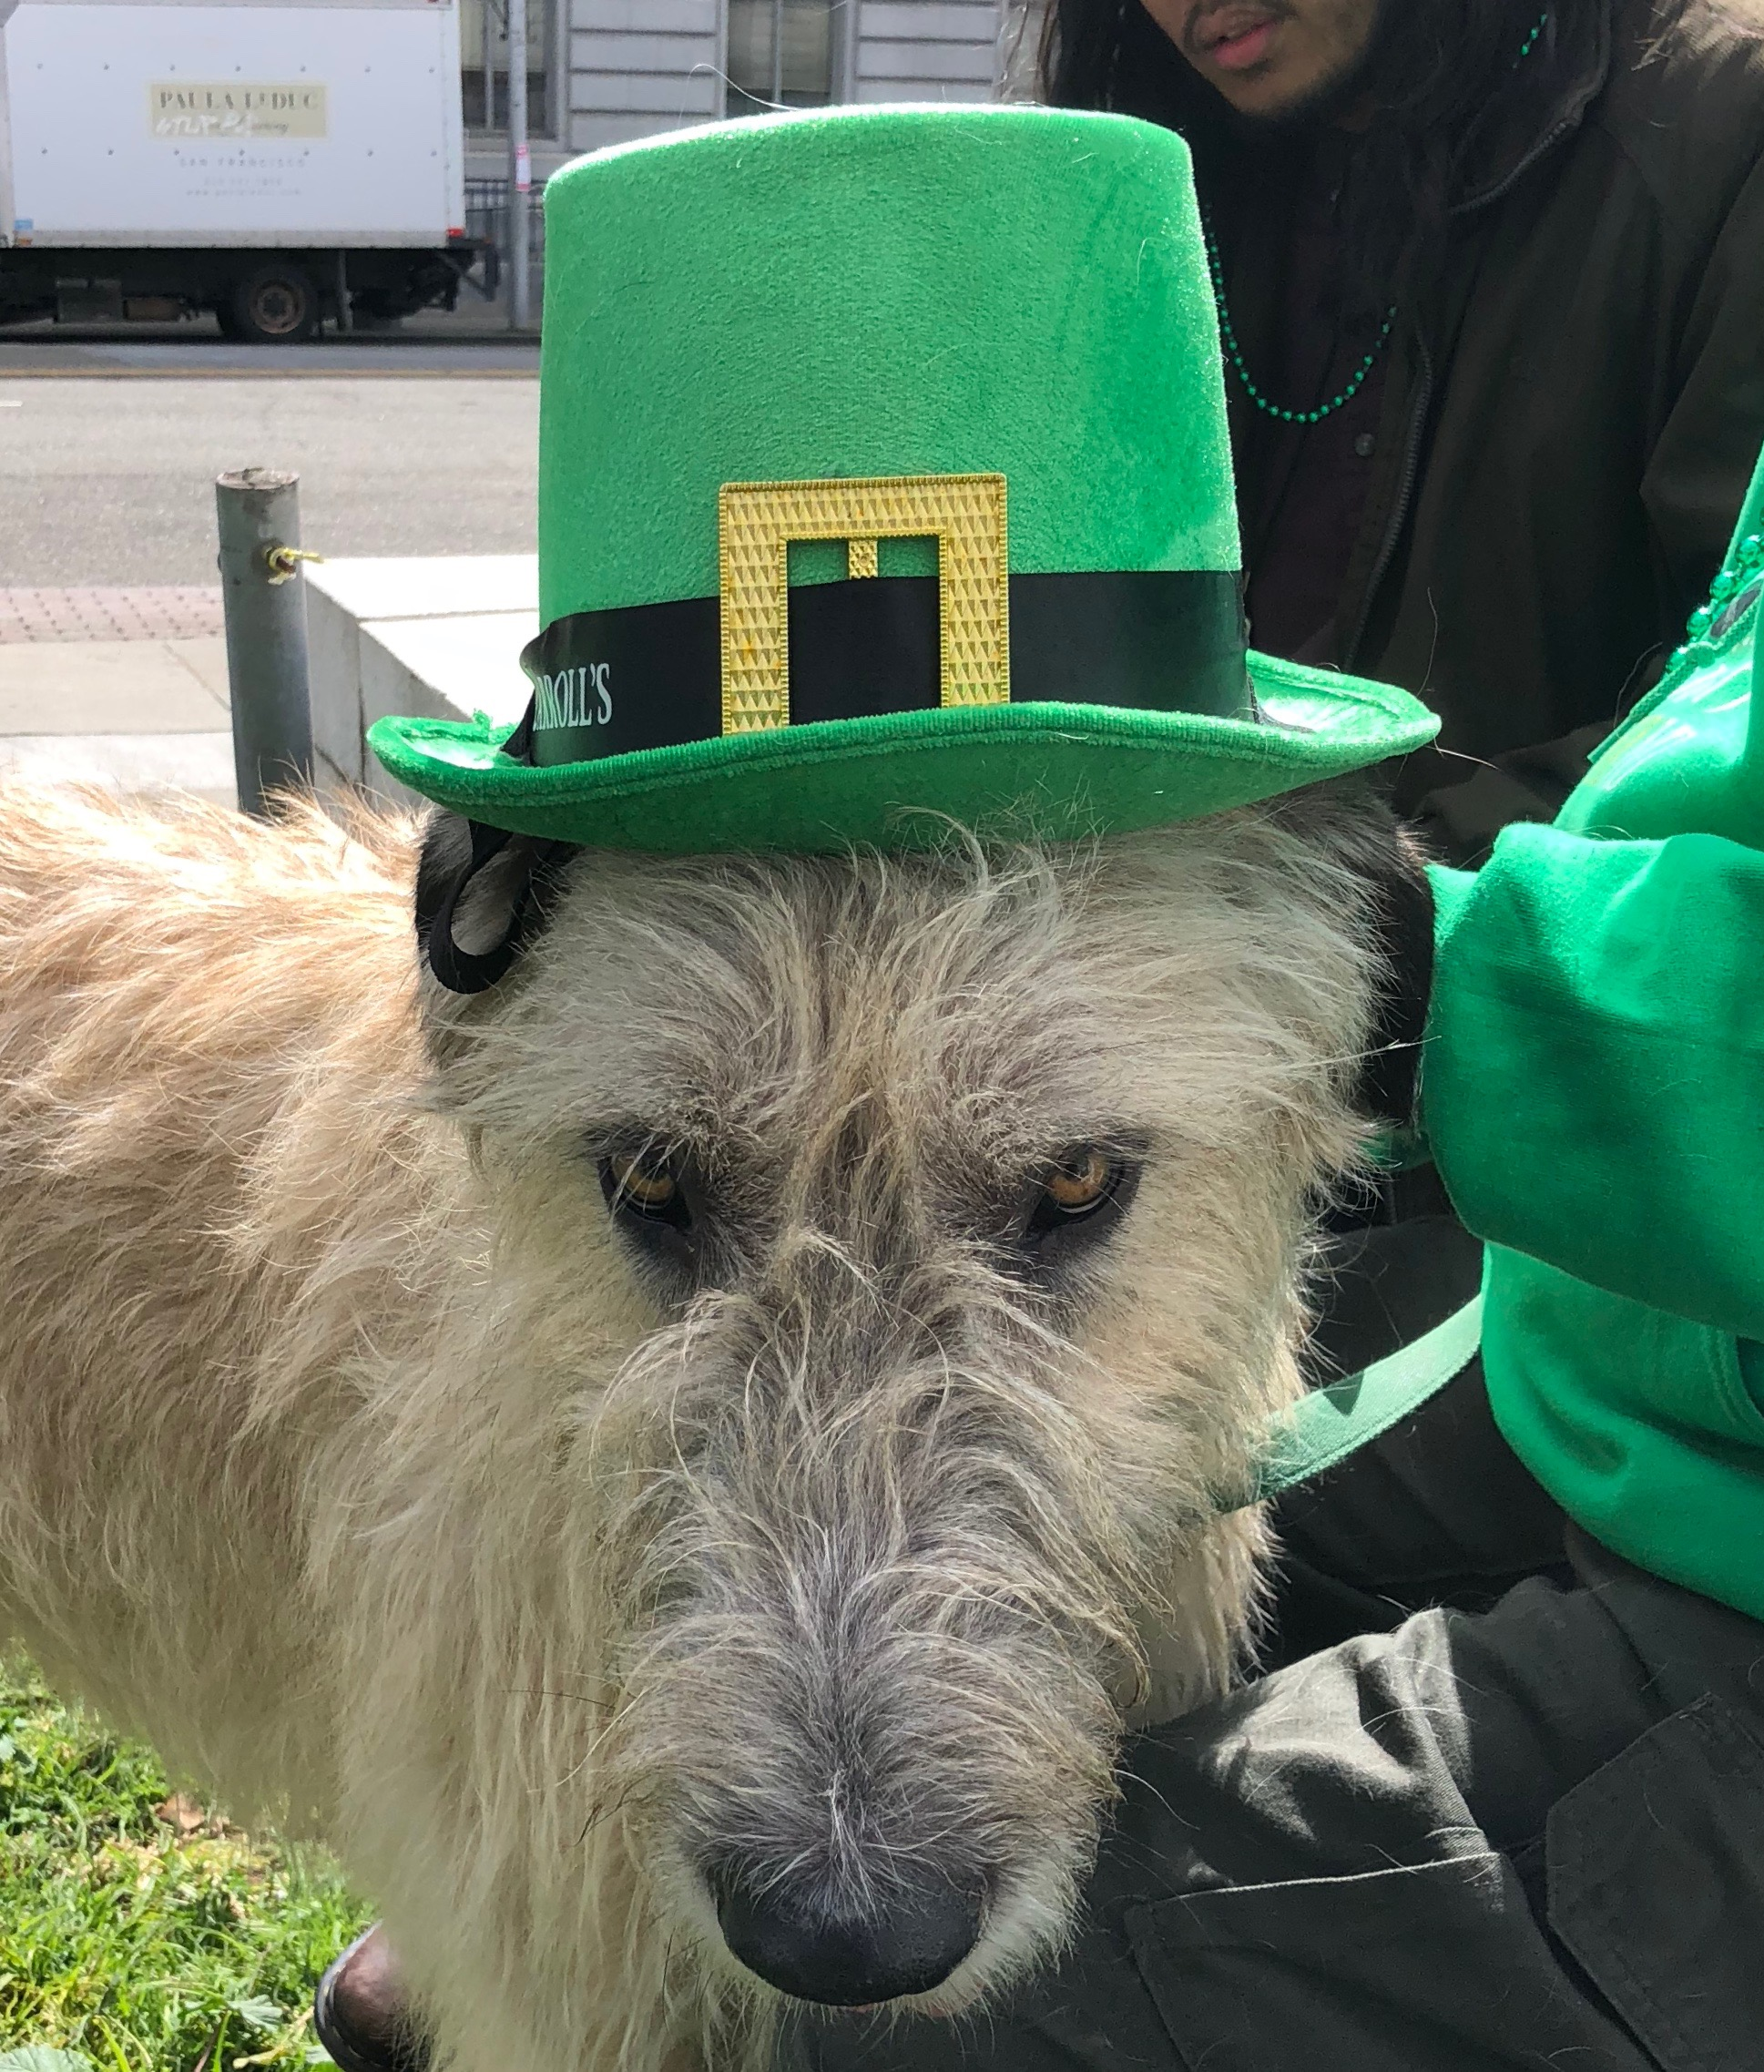 Irish Wolfhound With St. Patrick's Day Leprechaun Hat On His Head